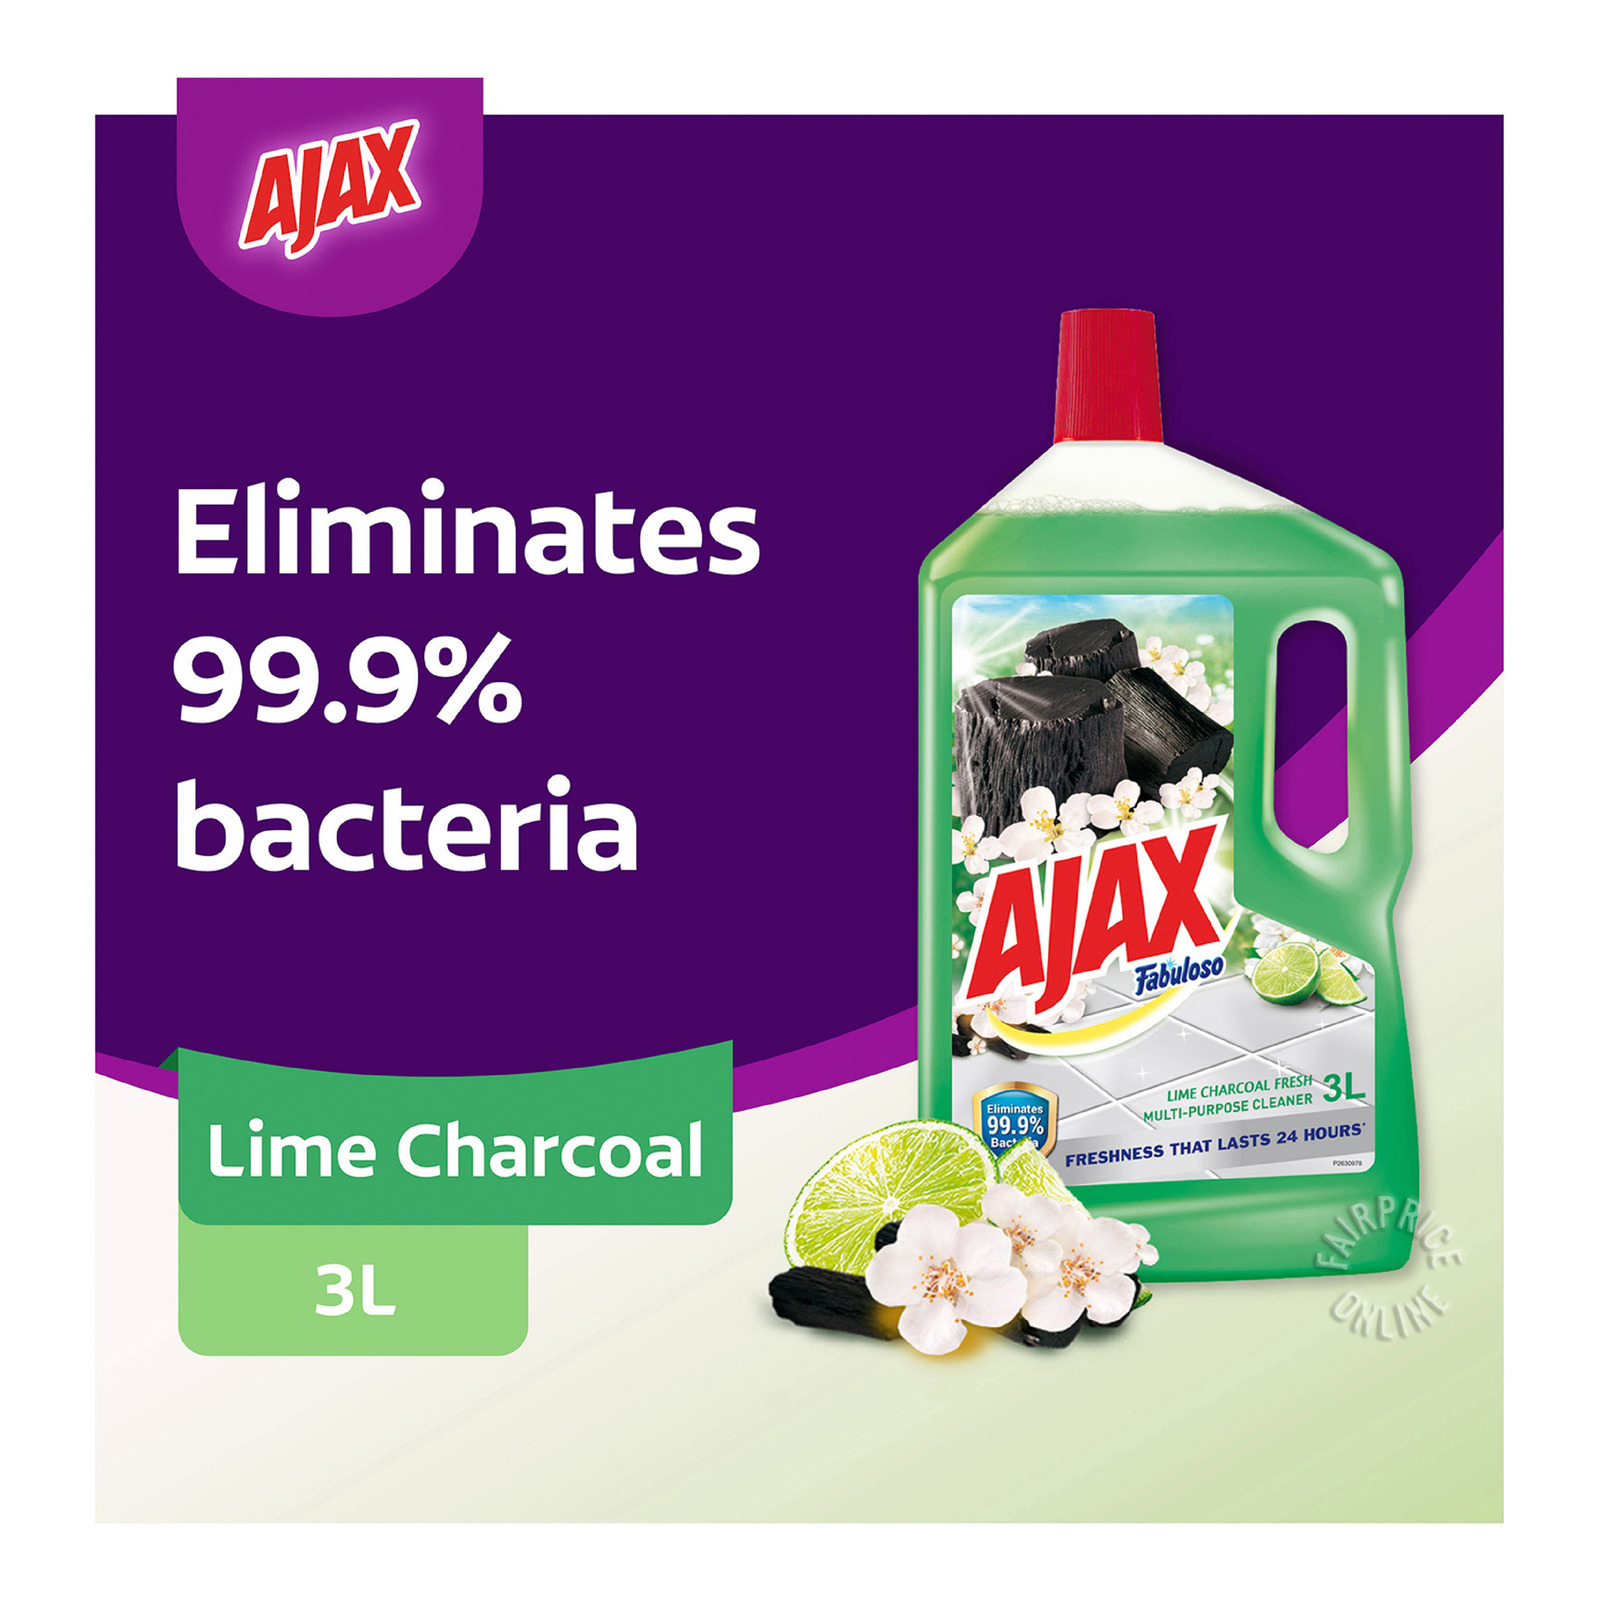 Ajax Fabuloso Multi-Purpose Floor Cleaner - Lime Charcoal Fresh